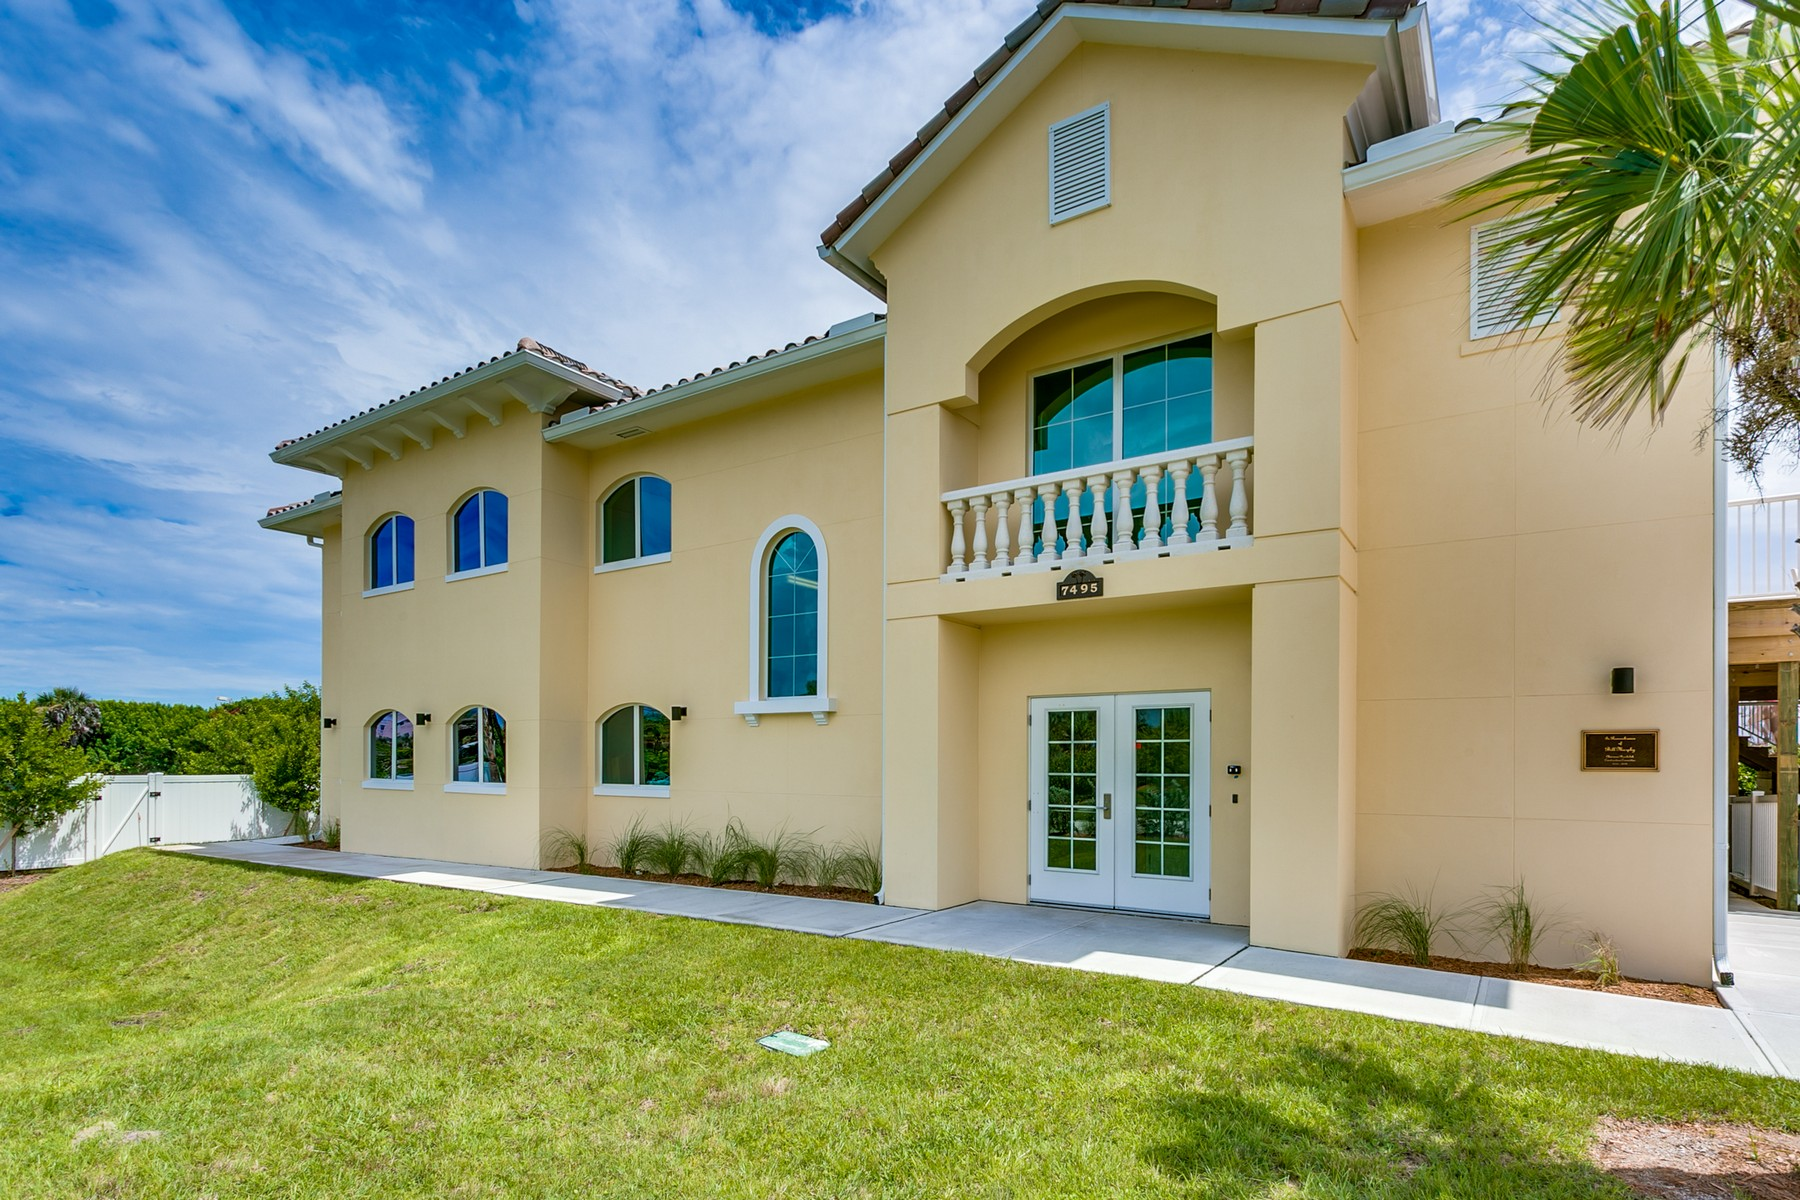 Additional photo for property listing at 7422 Matanilla Reef Way Melbourne Beach, Florida 32951 United States